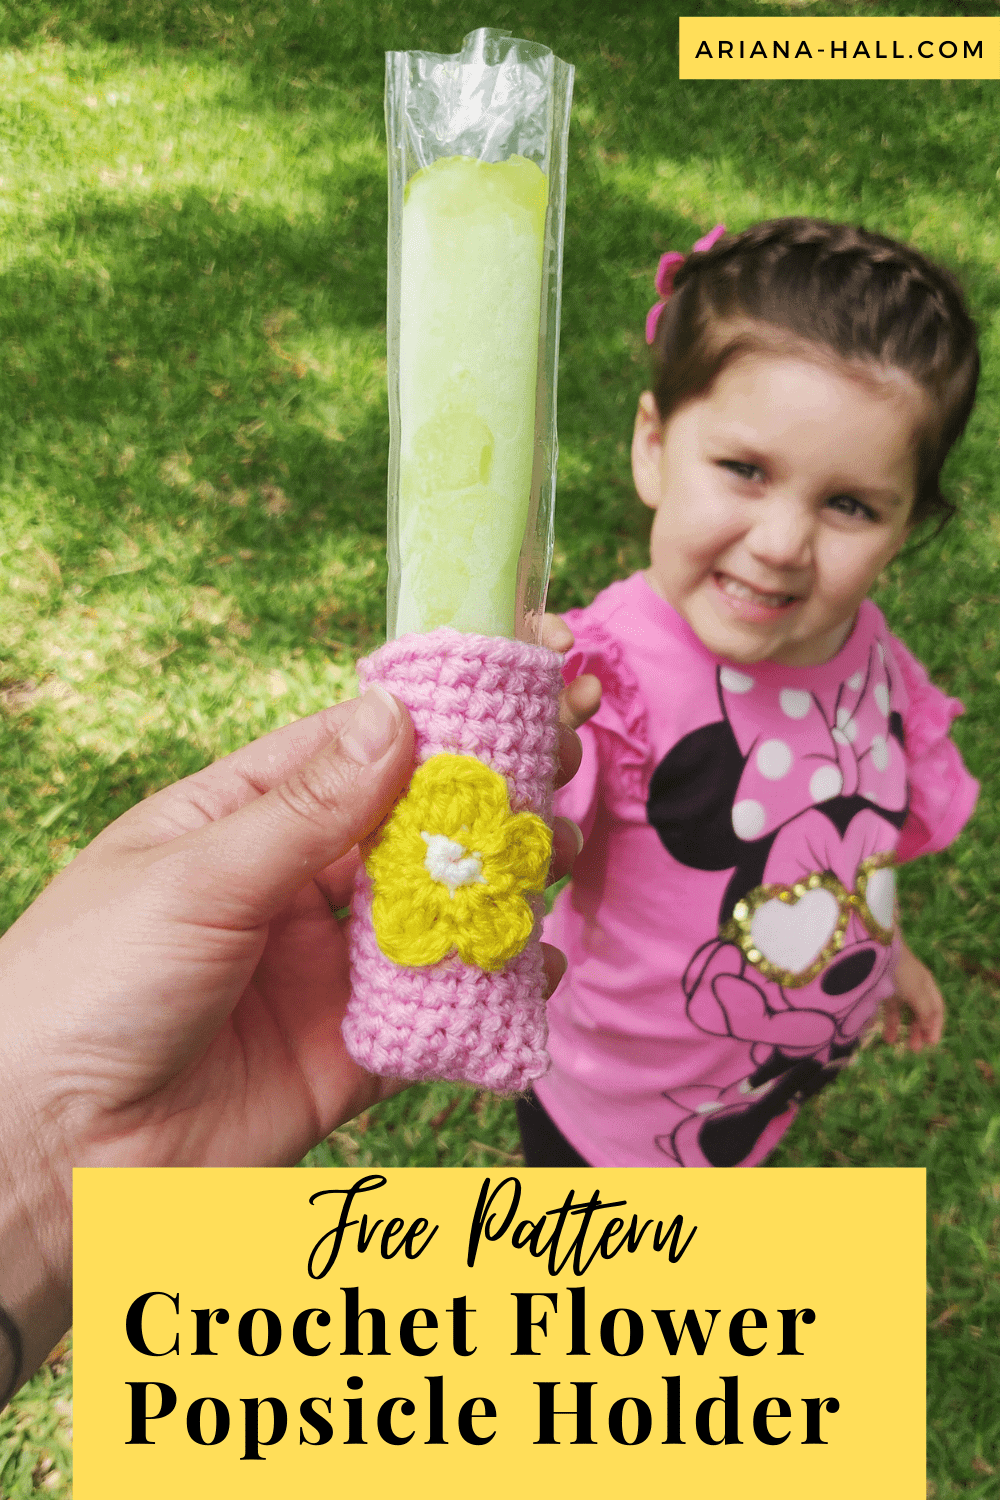 Pink crochet popsicle holder with flower in the middle.